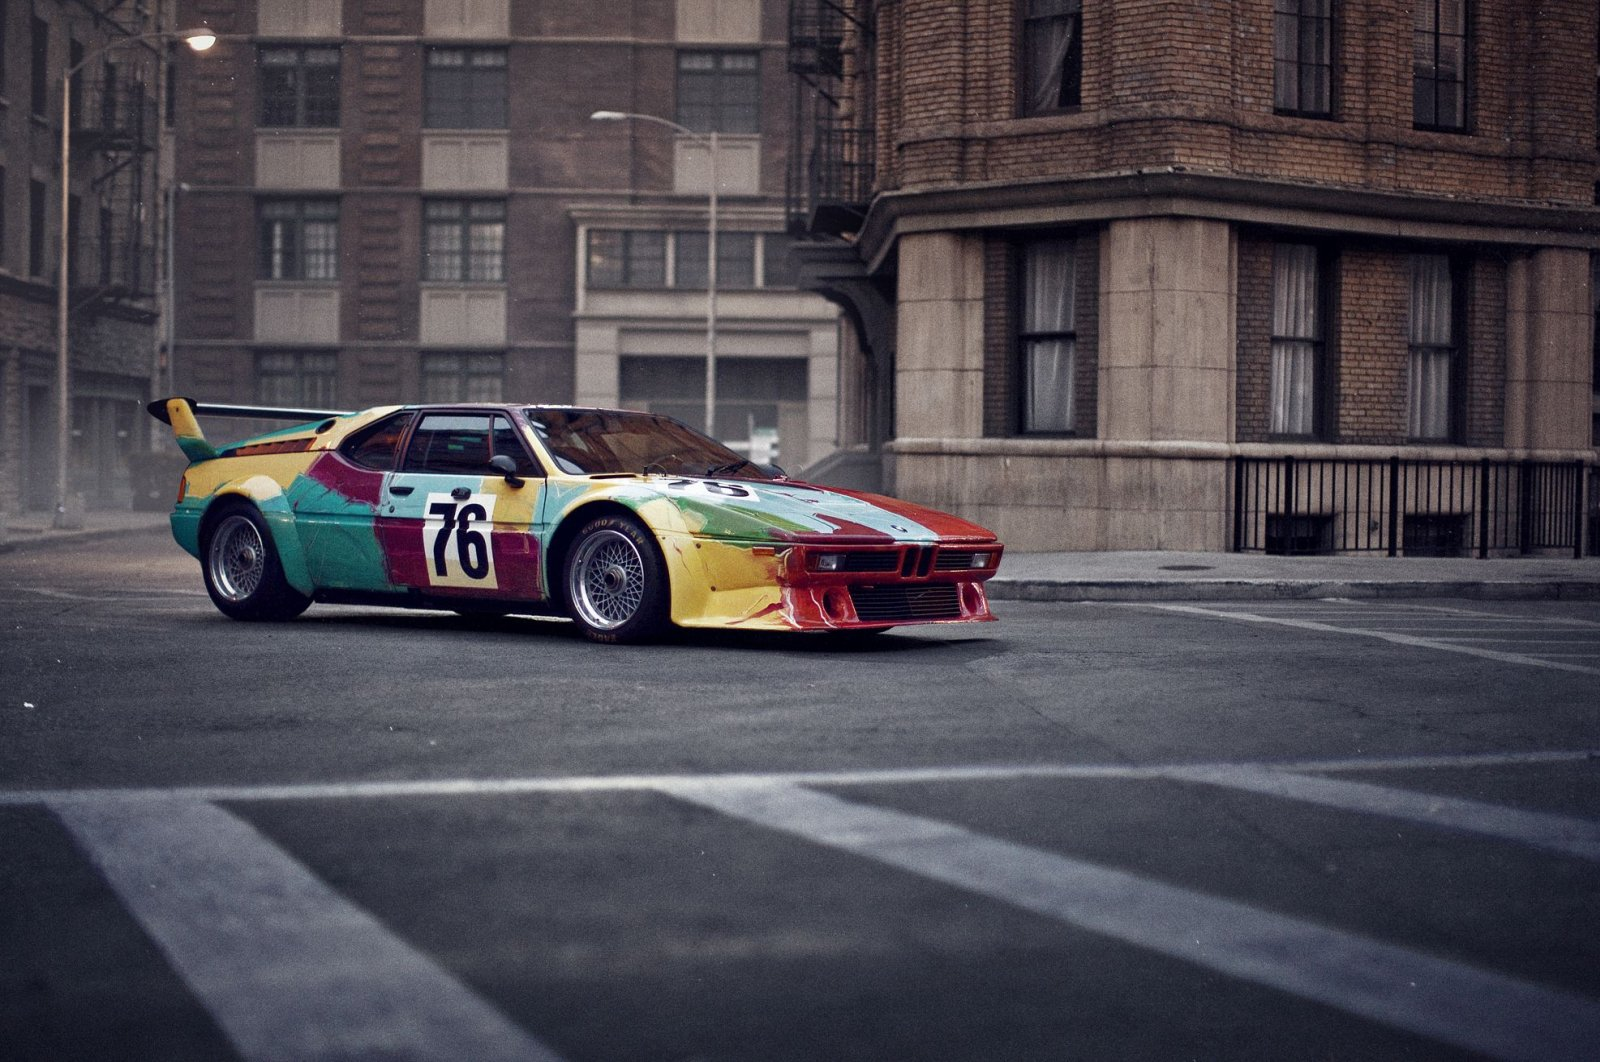 Just a colorful BMW? Art lovers will recognize a genuine Andy Warhol worth millions on this M1. Photo. (DPA Photo)